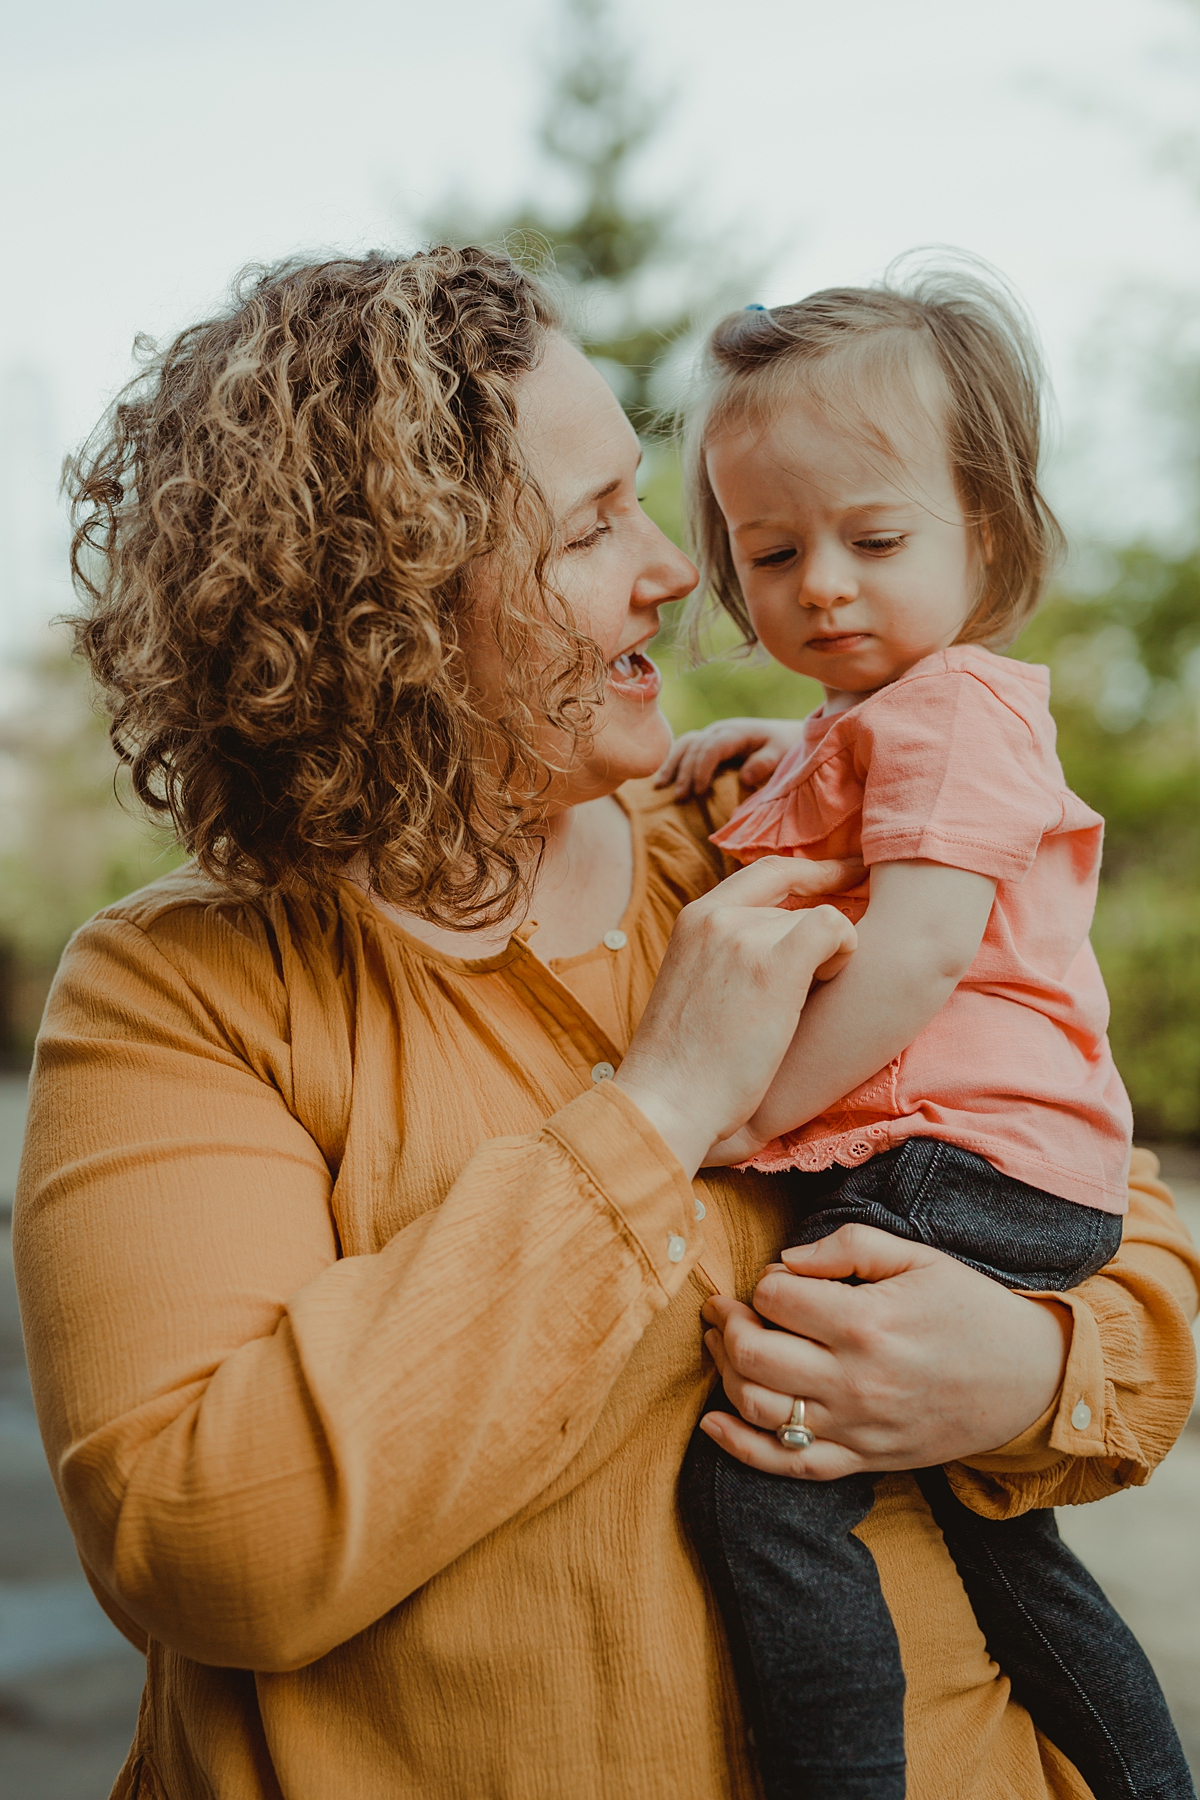 portrait of mom and daughter on cobble stoned street and bushes in dumbo brooklyn. photo by nyc family and newborn photographer krystil mcdowall